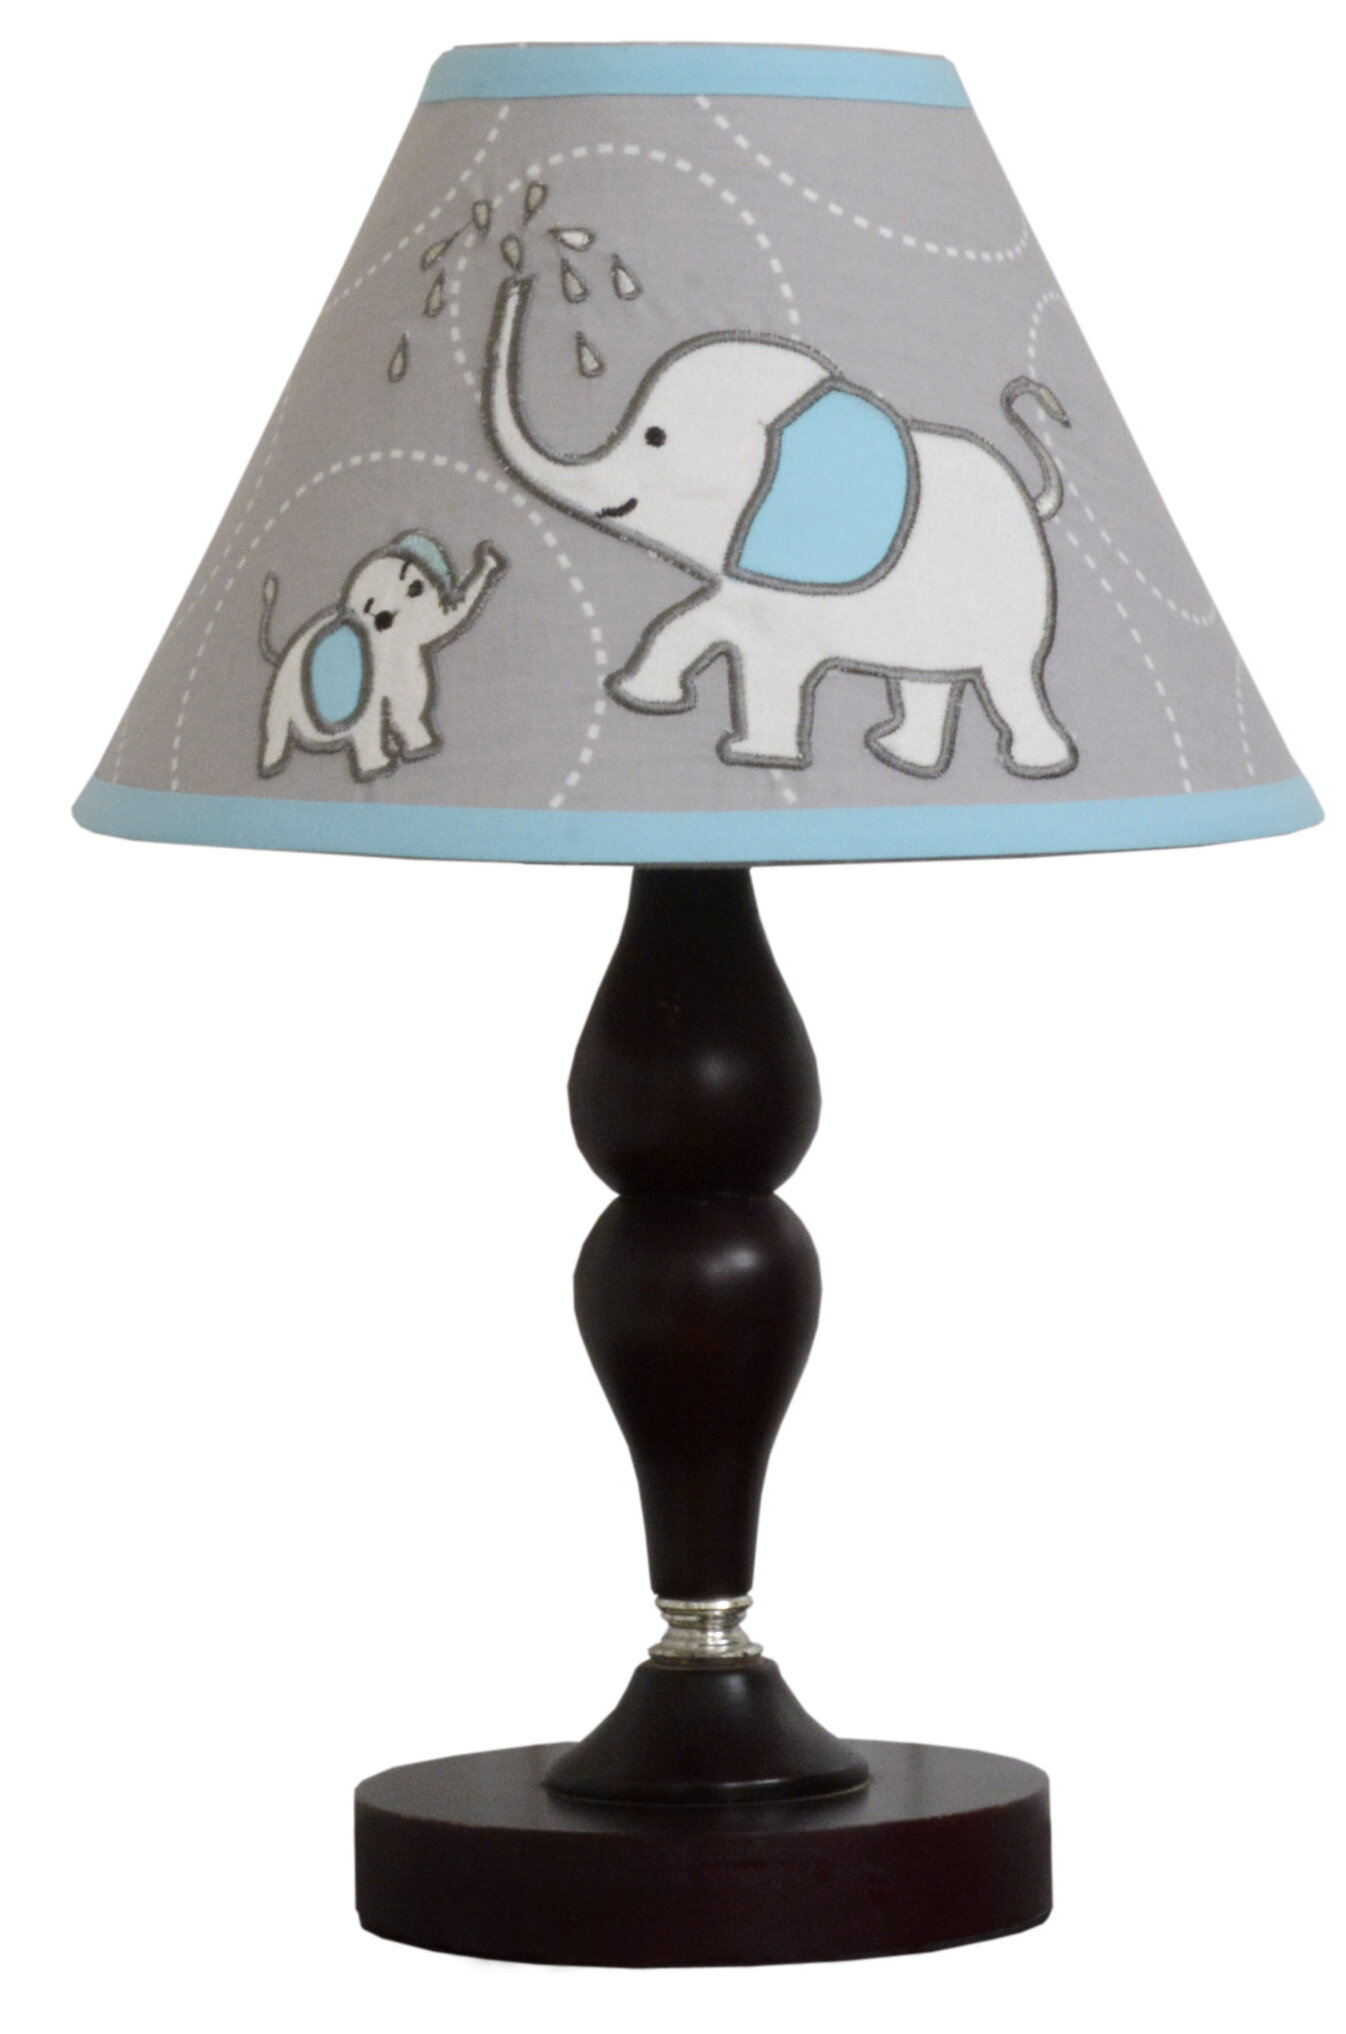 nursery l home elephant design lamp palmyralibraryorg photography